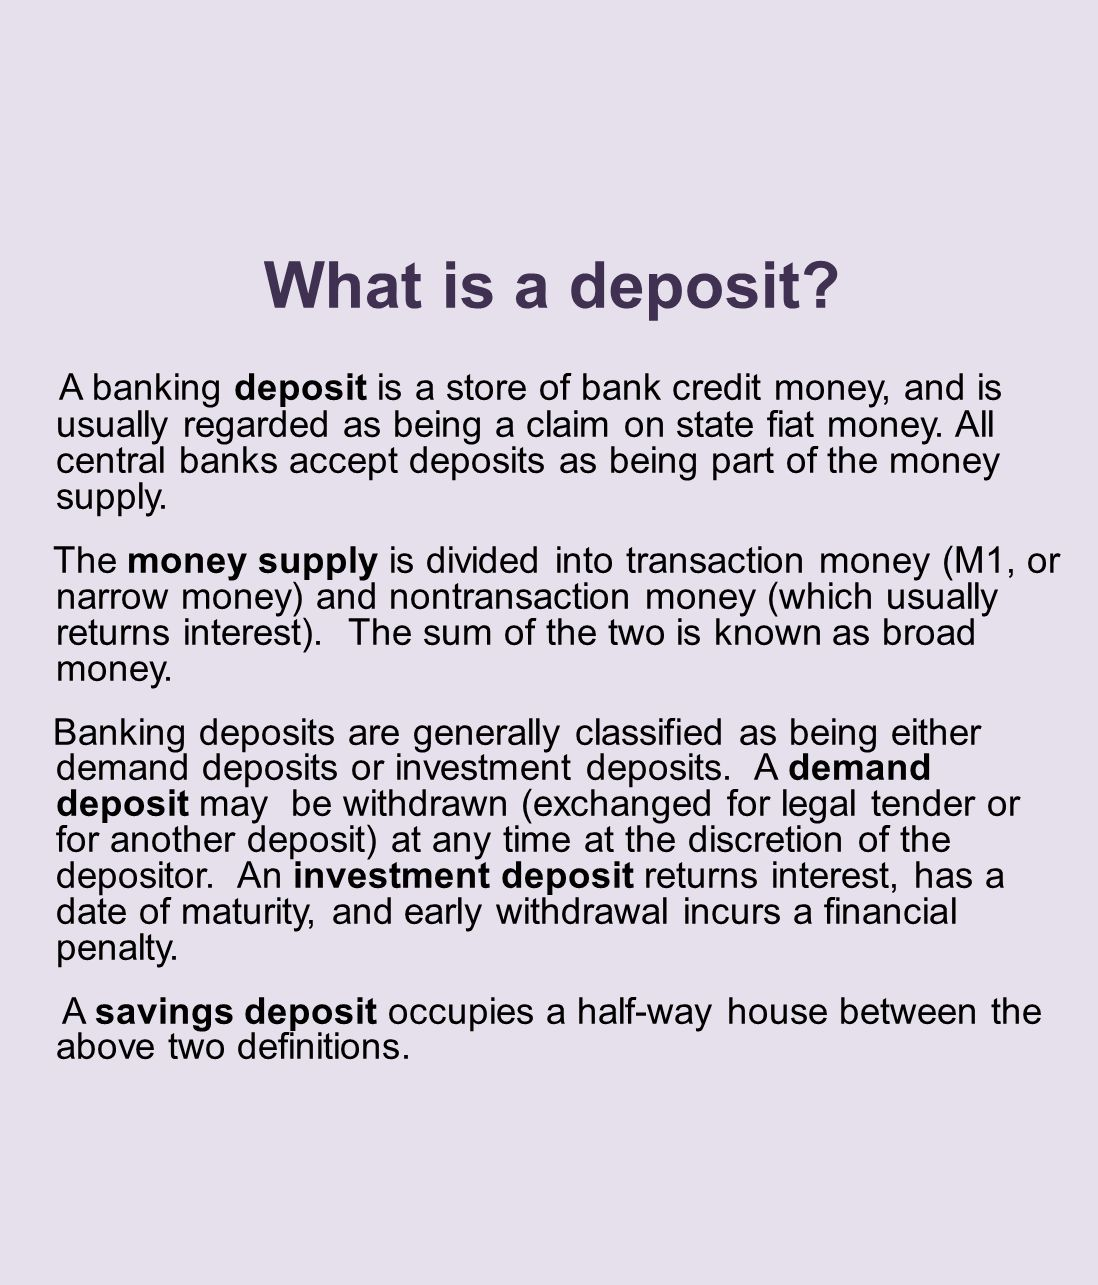 What is a deposit? A banking deposit is a store of bank credit money, and is usually regarded as being a claim on state fiat money. All central banks